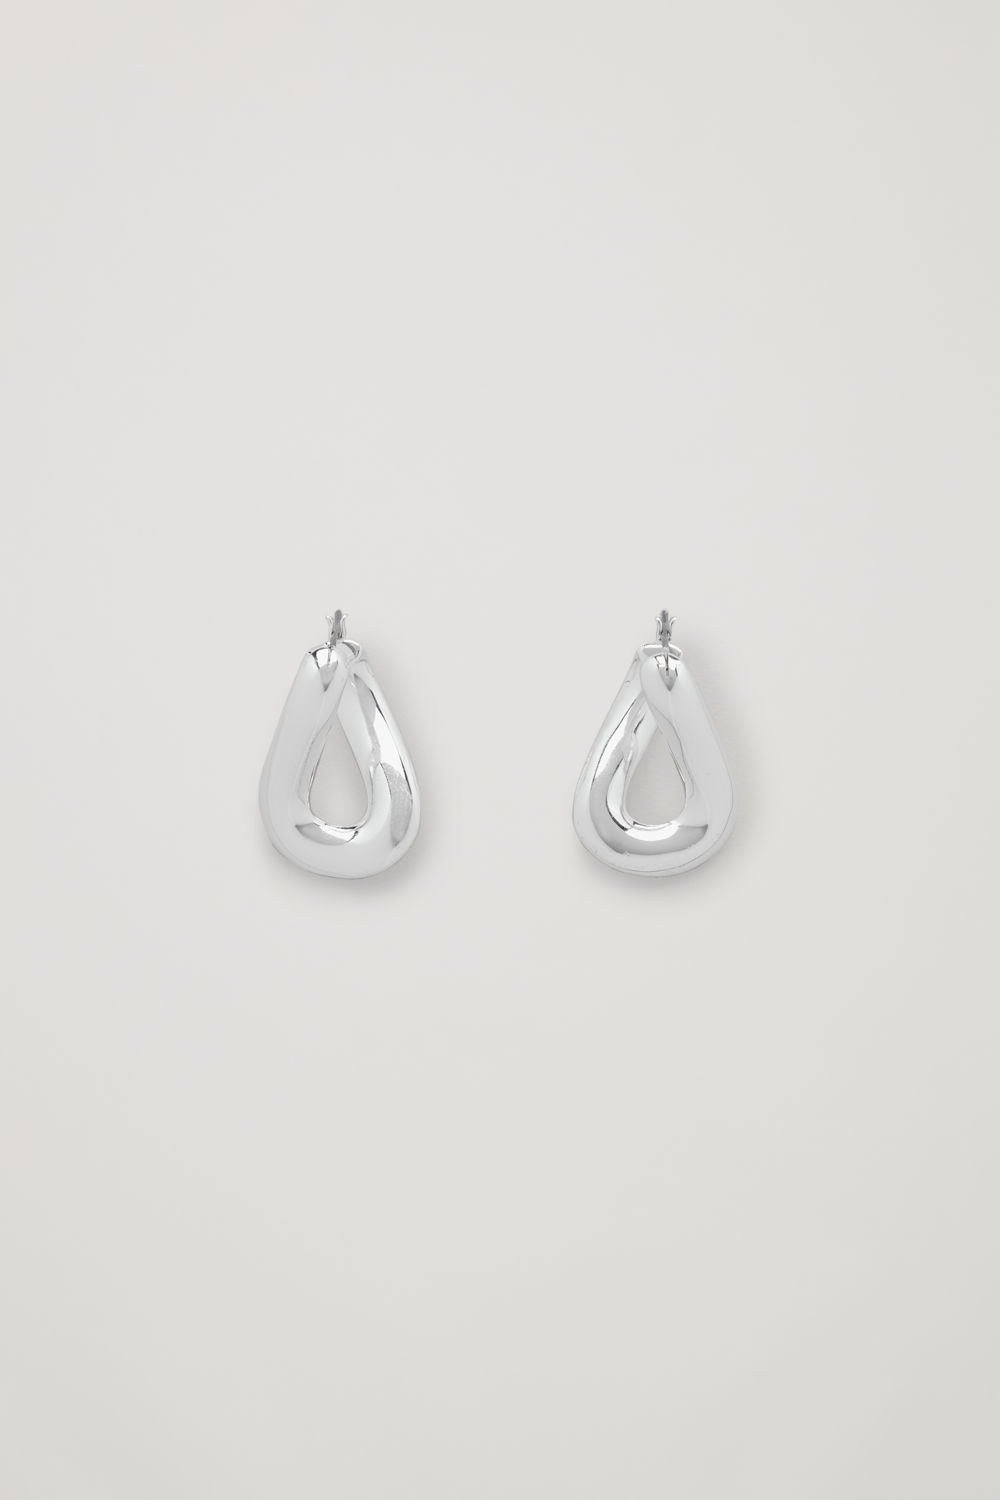 TWIST-SHAPED HOOP EARRINGS